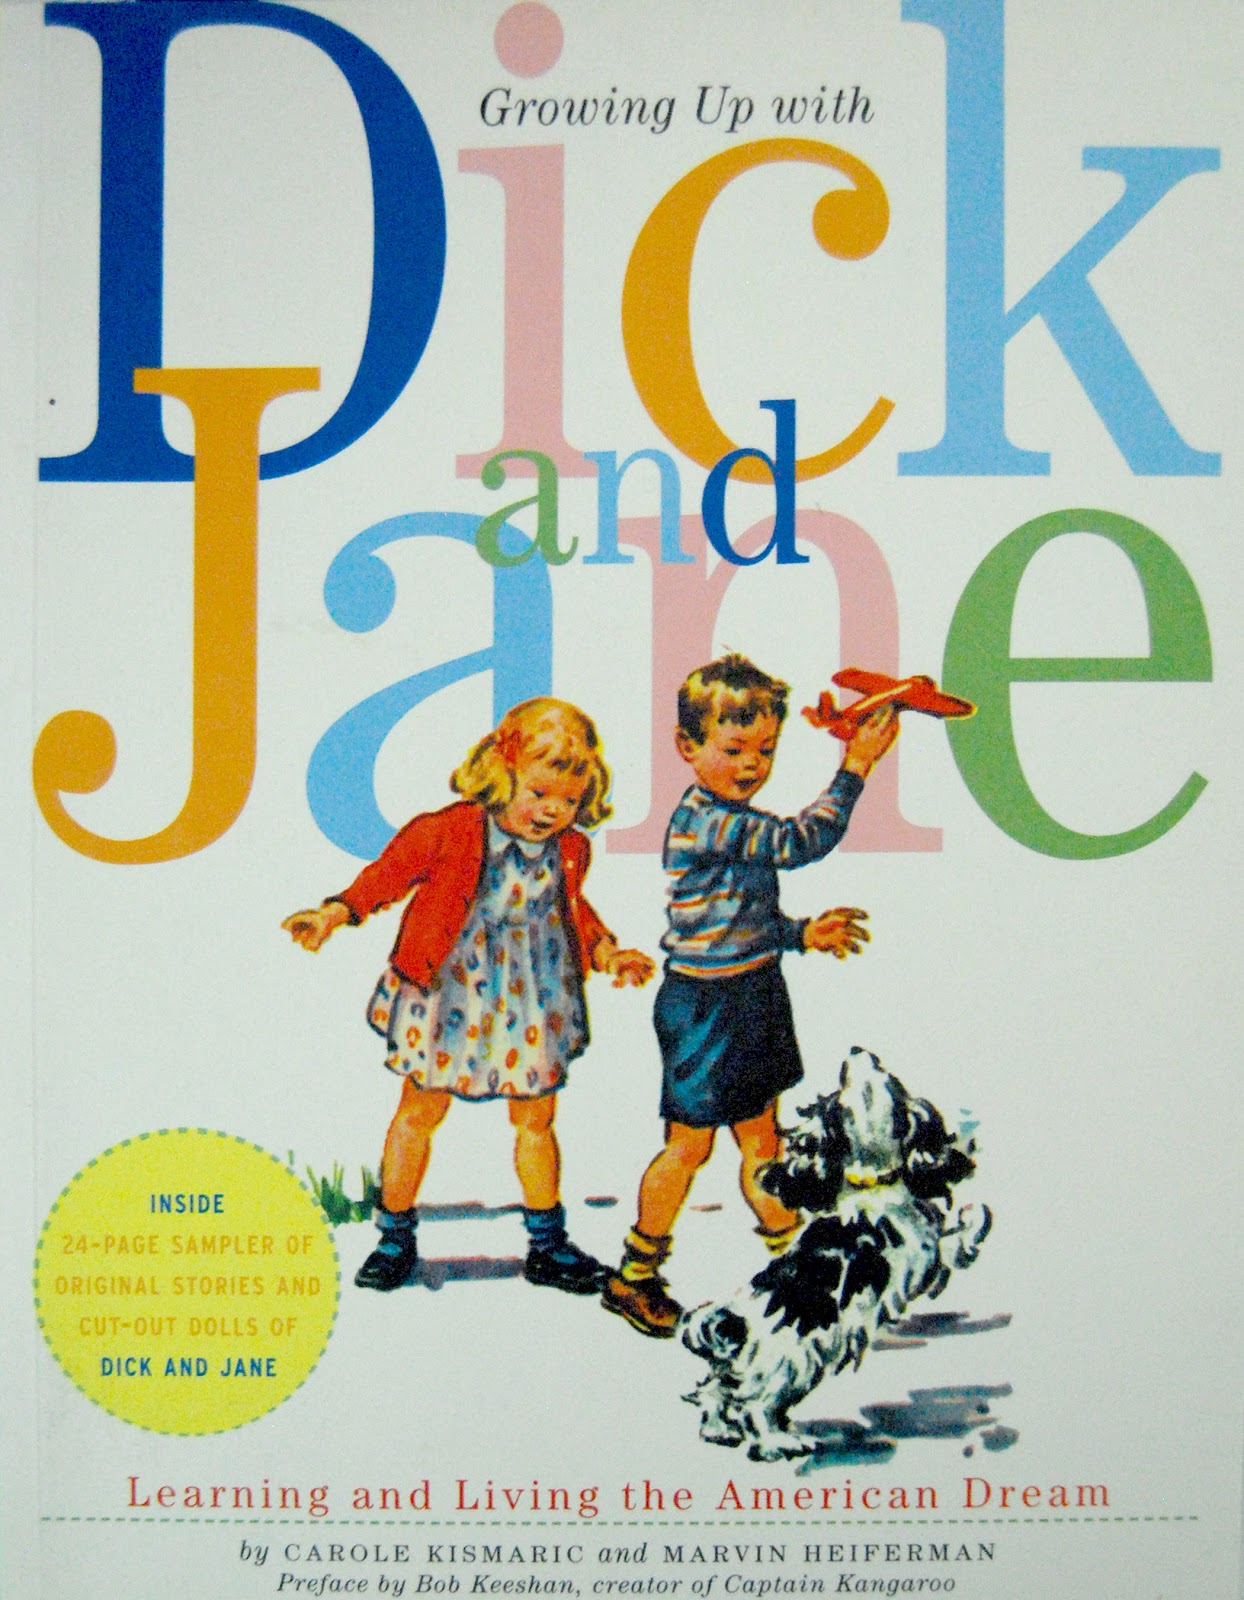 the dick and jane books